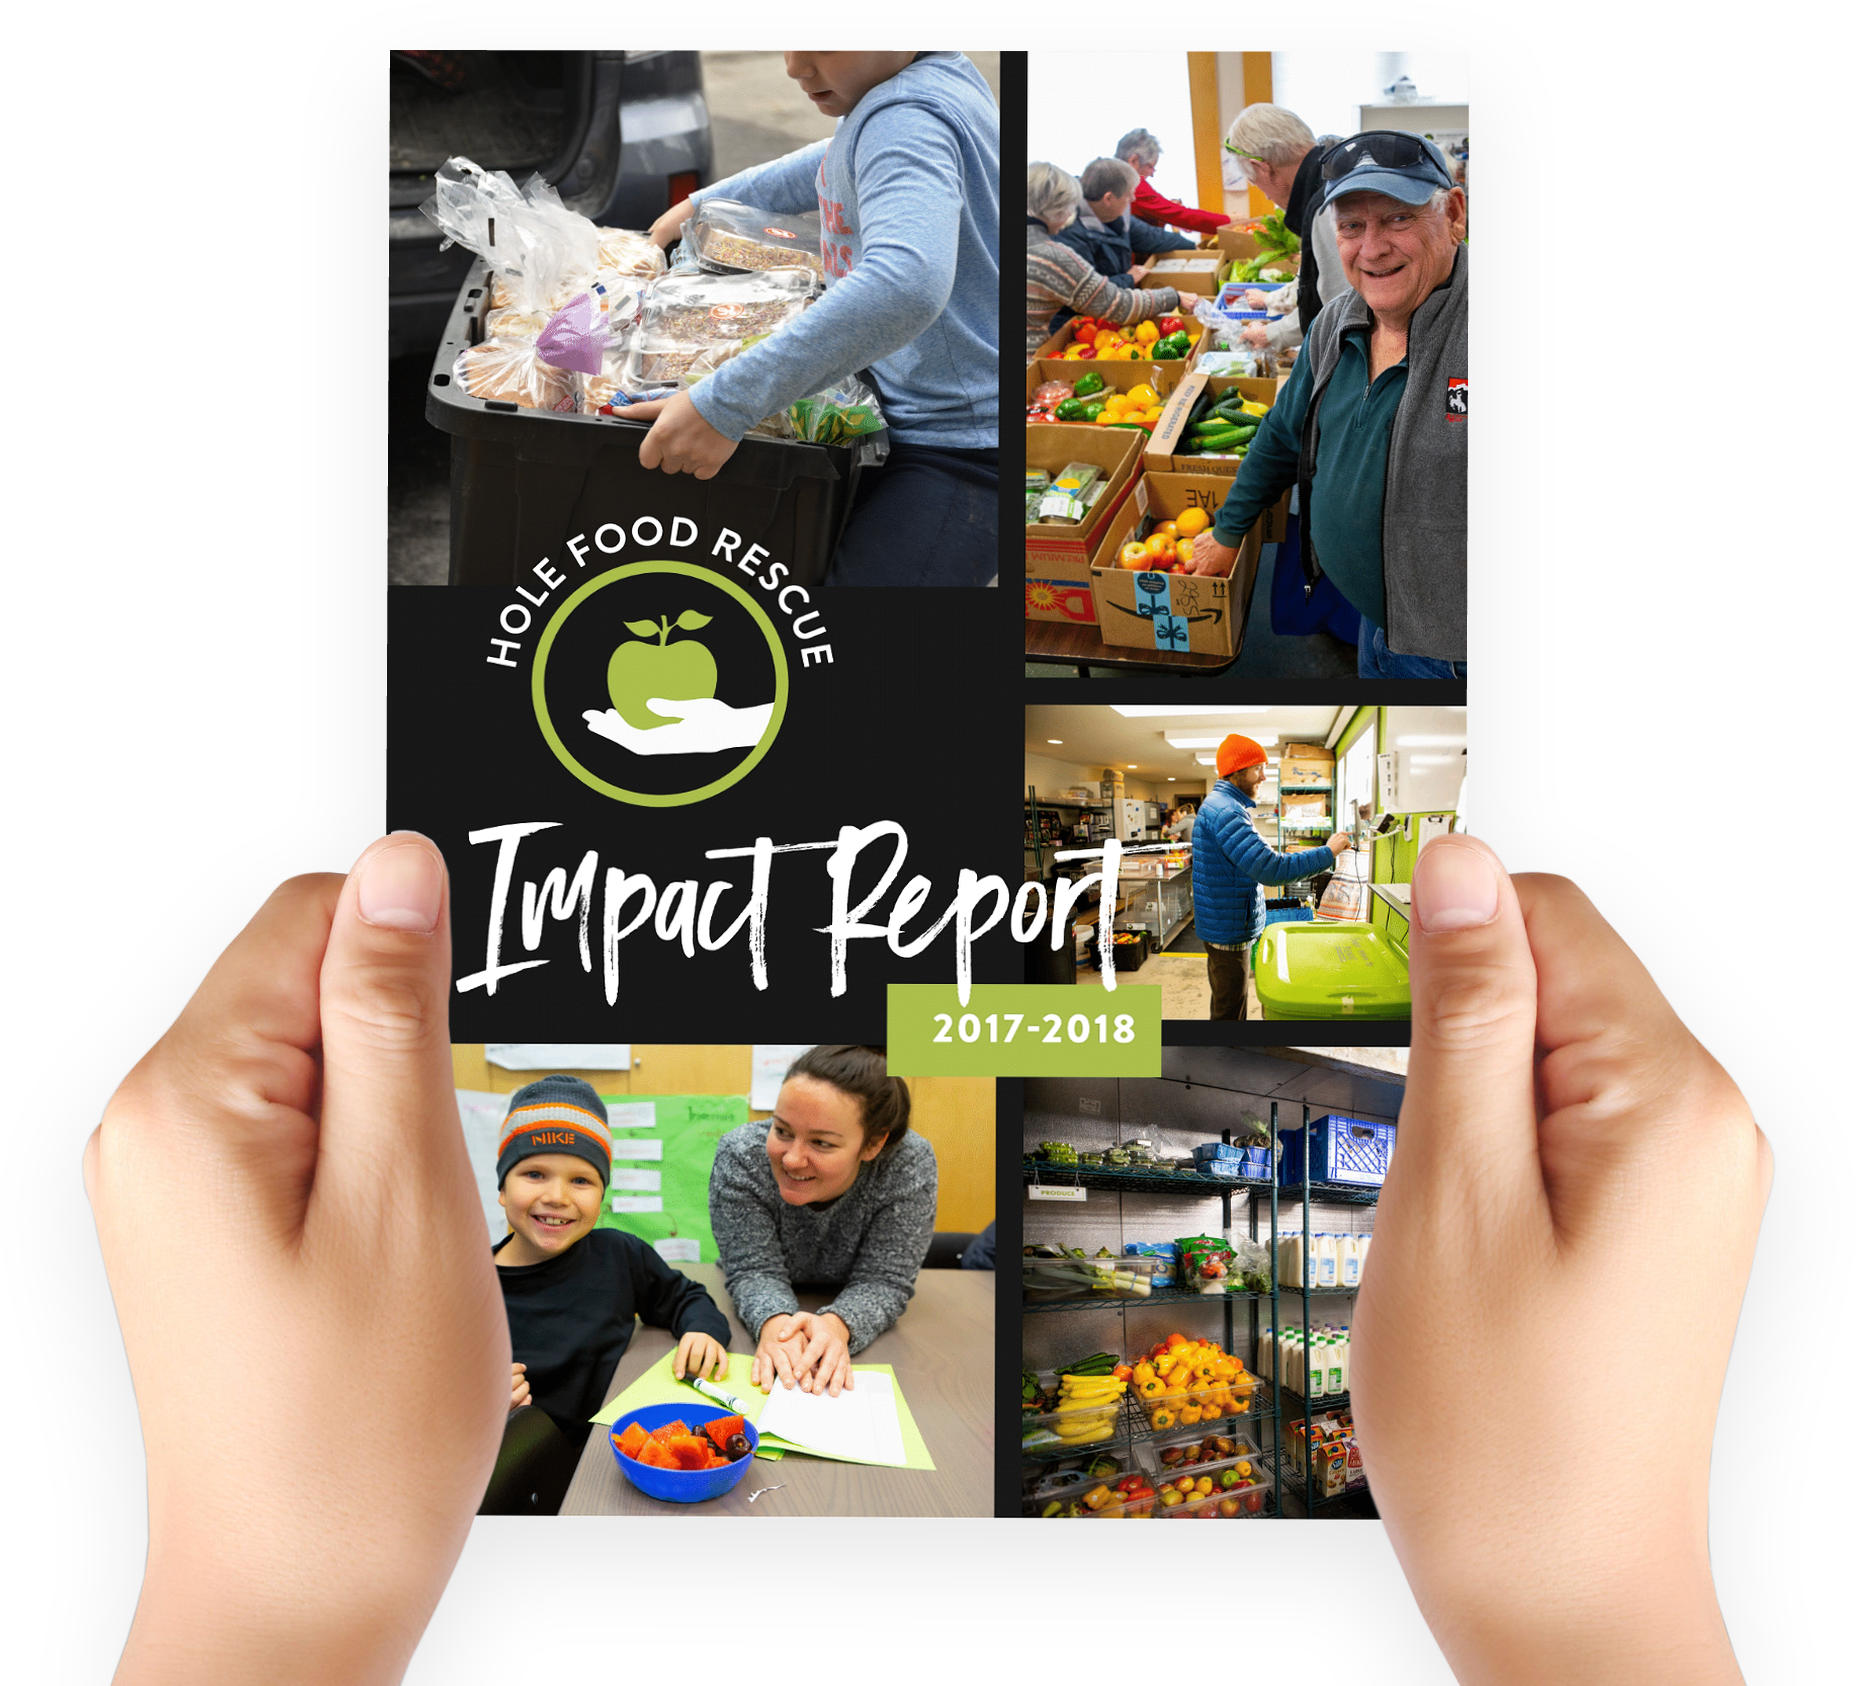 In 2018, we rescued over 270,000 lbs. of food. Enough to feed 47 families for 1 year. - We're proud to present our 2017-2018 Impact Report, detailing our impact on food insecurity, food waste, and the environment. We could not have accomplished so much without our incredible volunteers and generous donors.